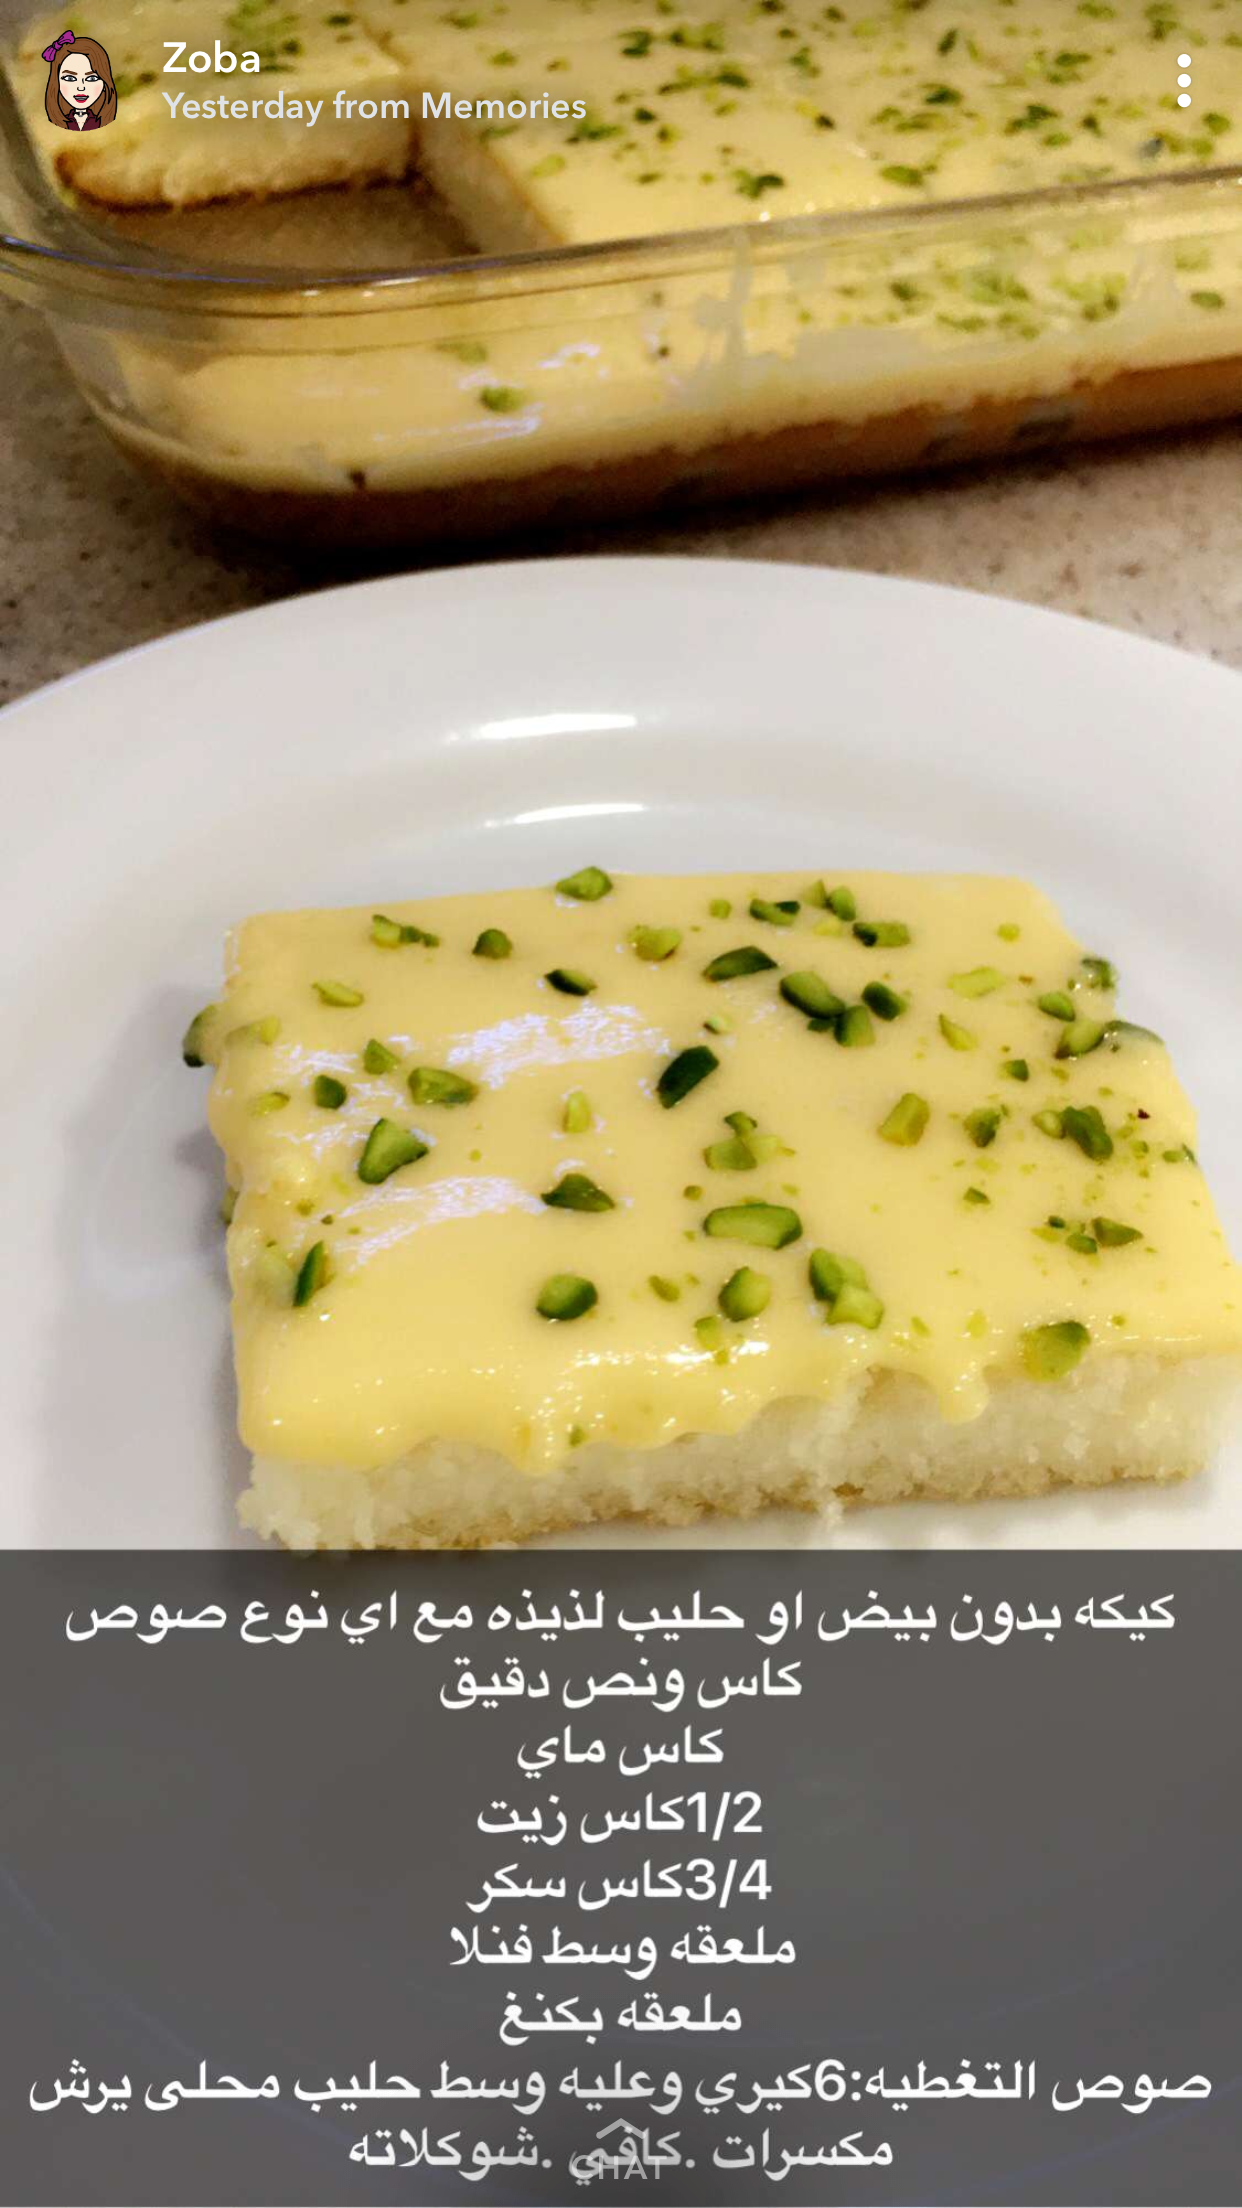 كيكه بدون بيض Recipes Food Recipies Cooking Recipes